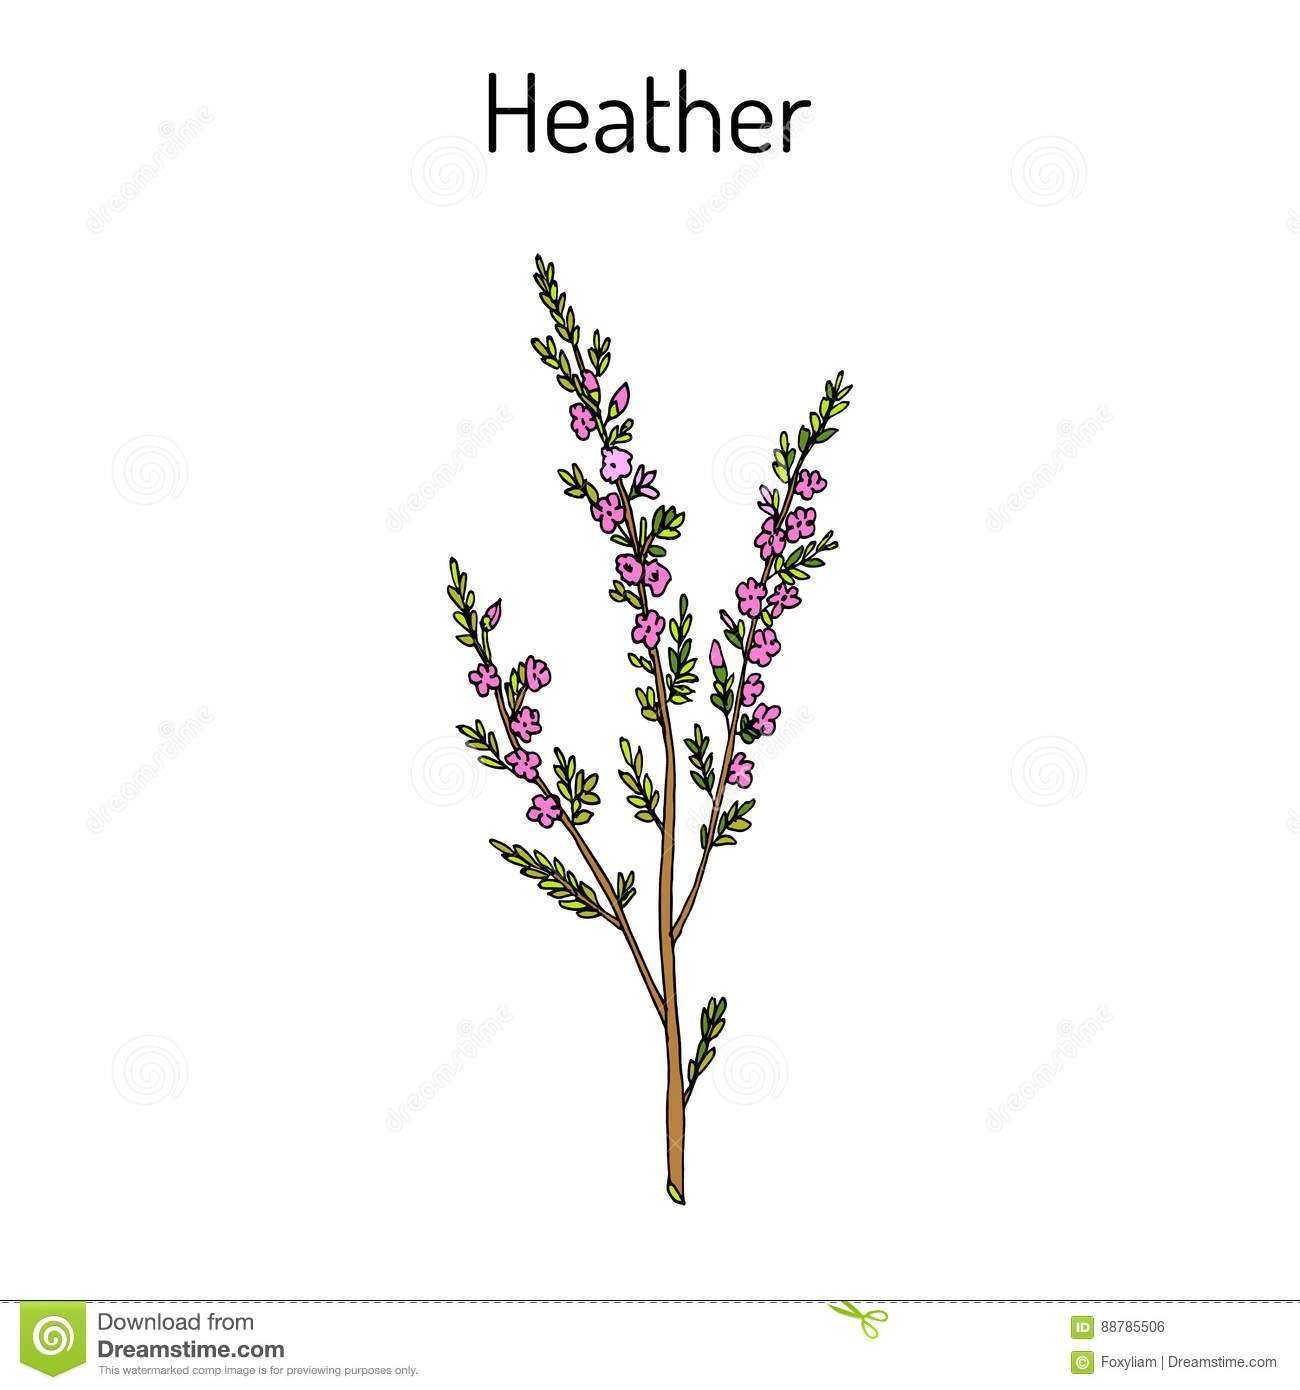 Pin By Gretta Roberts On Tattoos In 2020 Heather Flower Plant Sketches Heather Plant